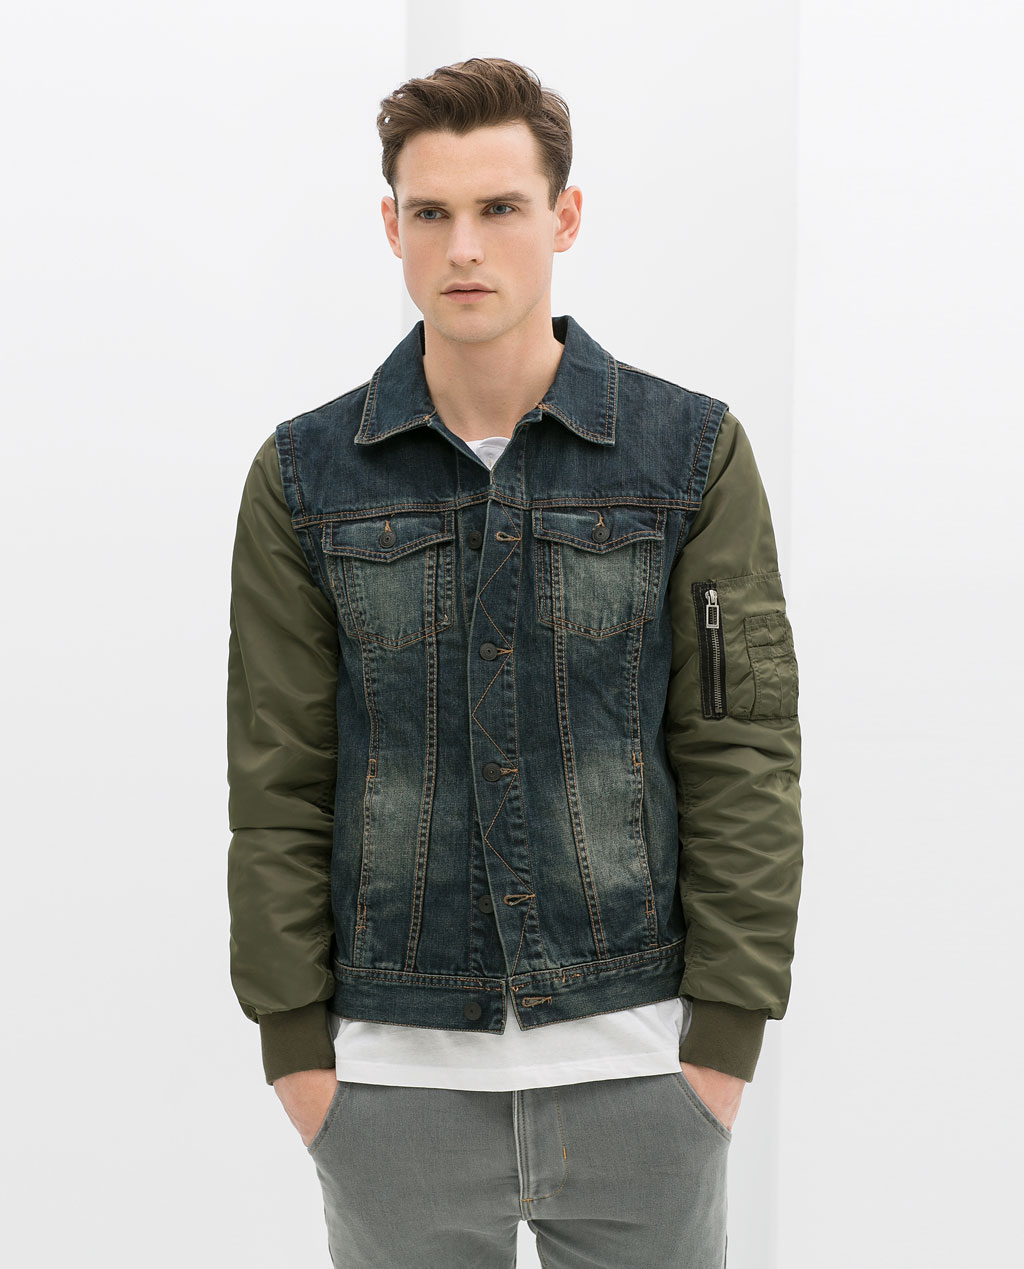 Zara mens denim jacket with leather sleeves